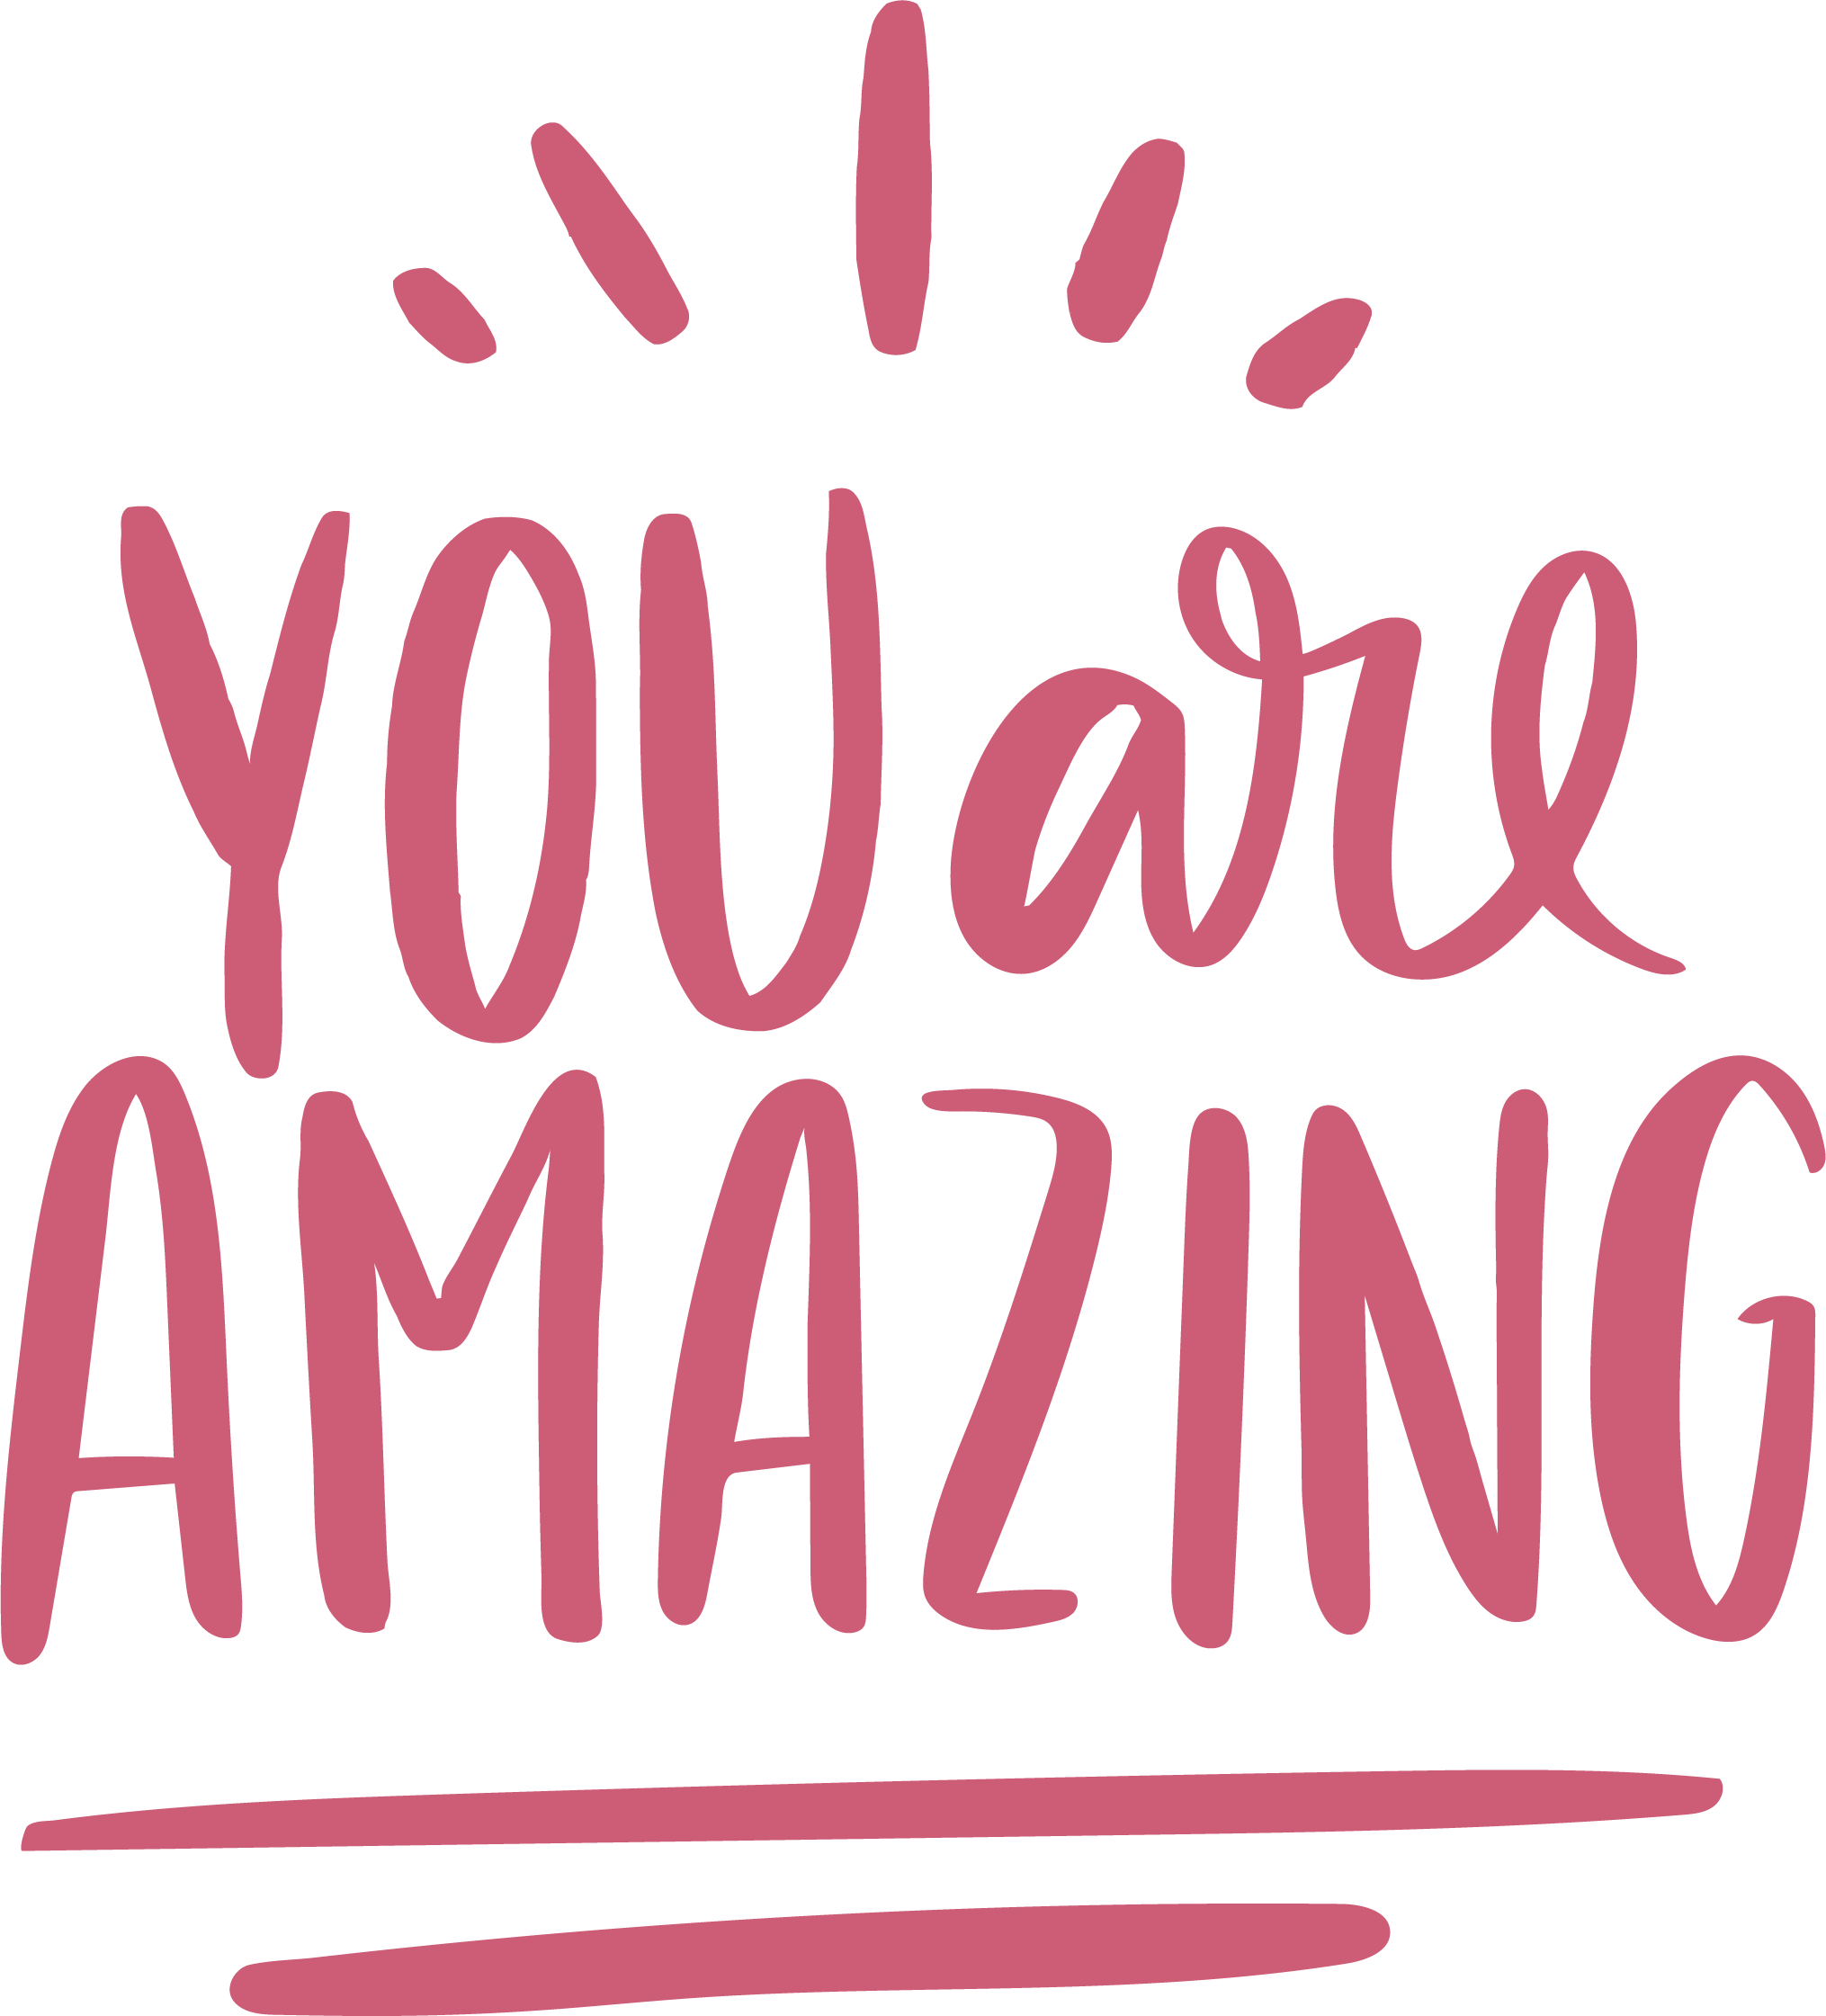 All Girl You Are Amazing SVG Cut File